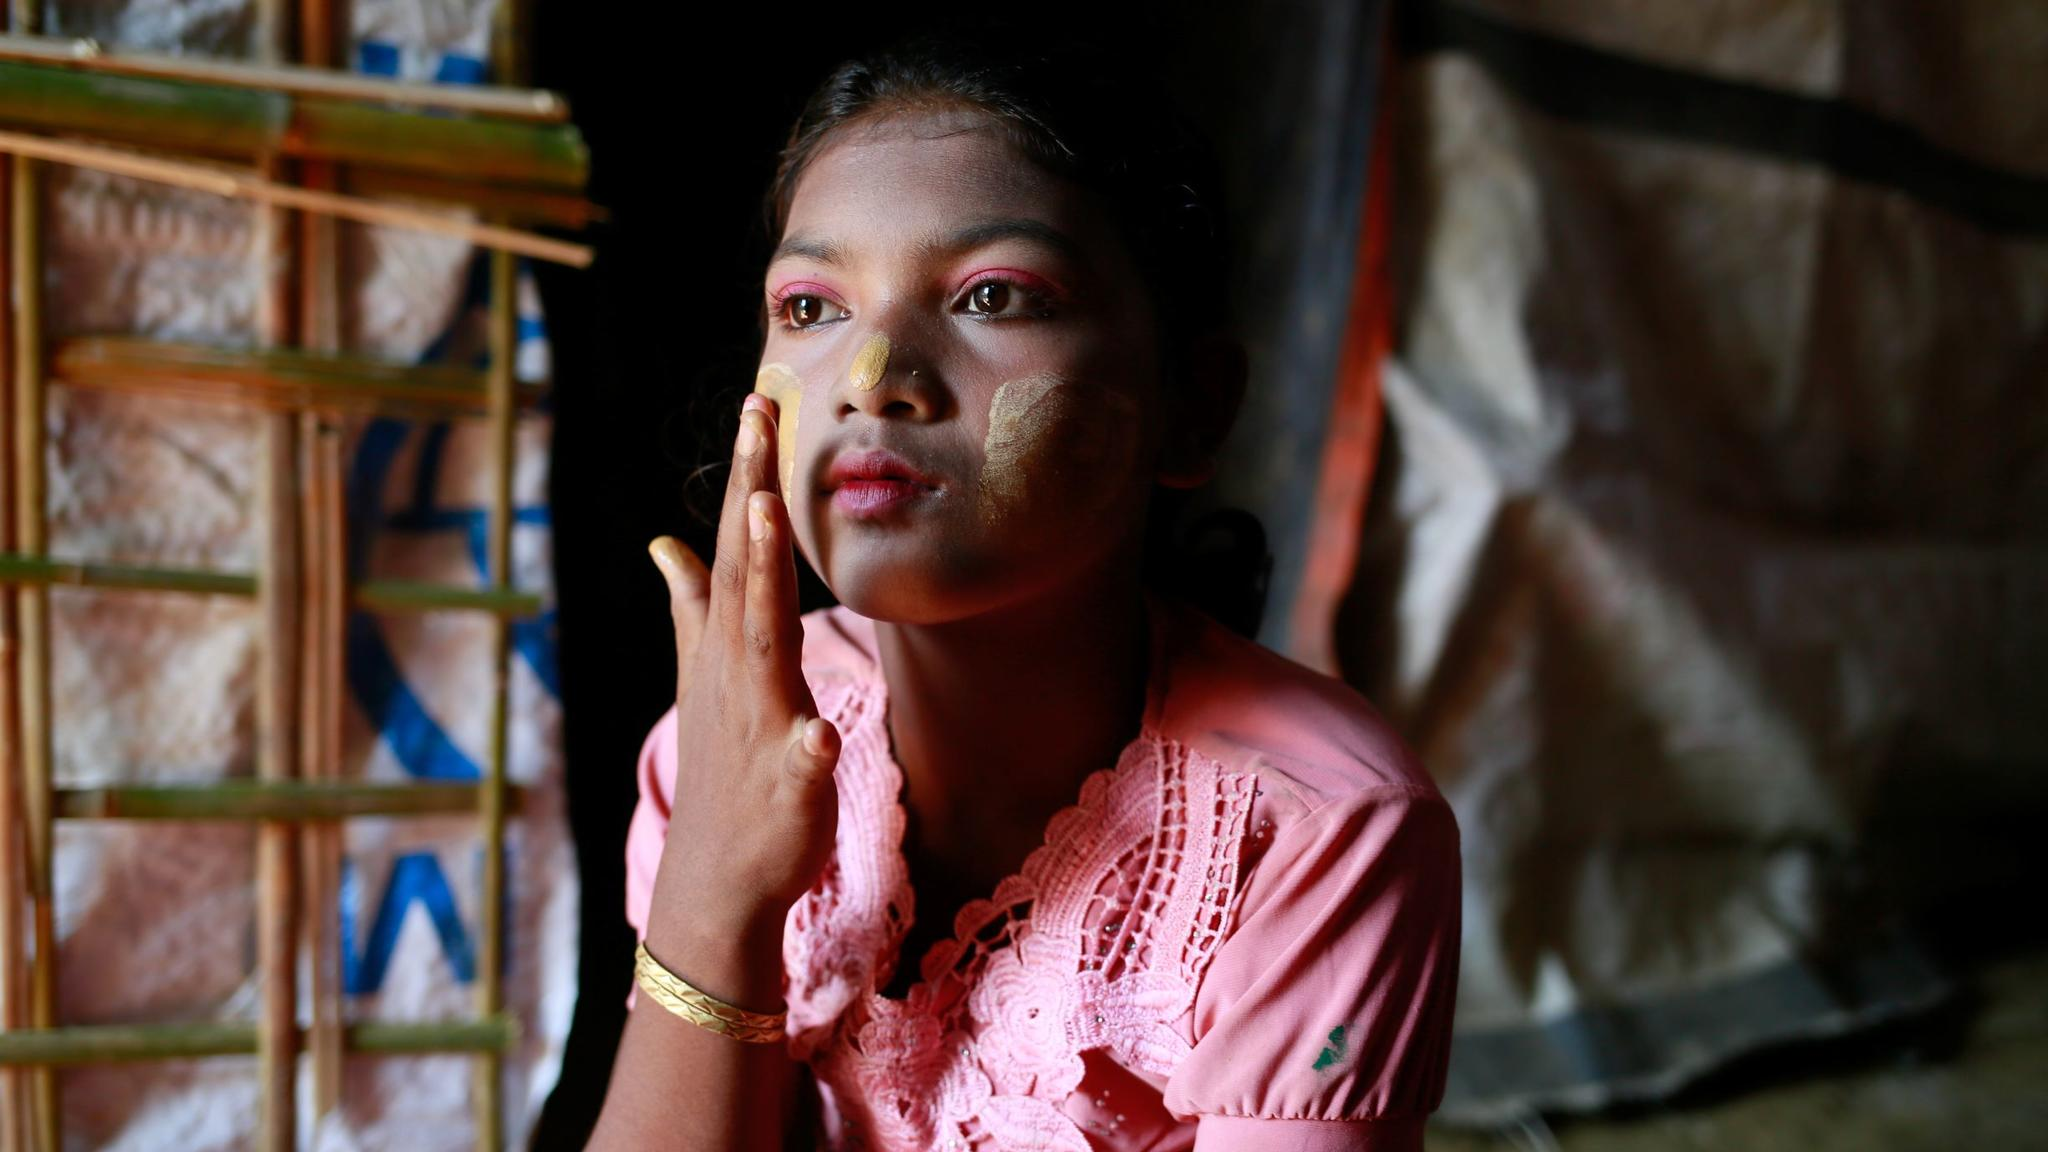 Hasina, applying traditional make-up to her face